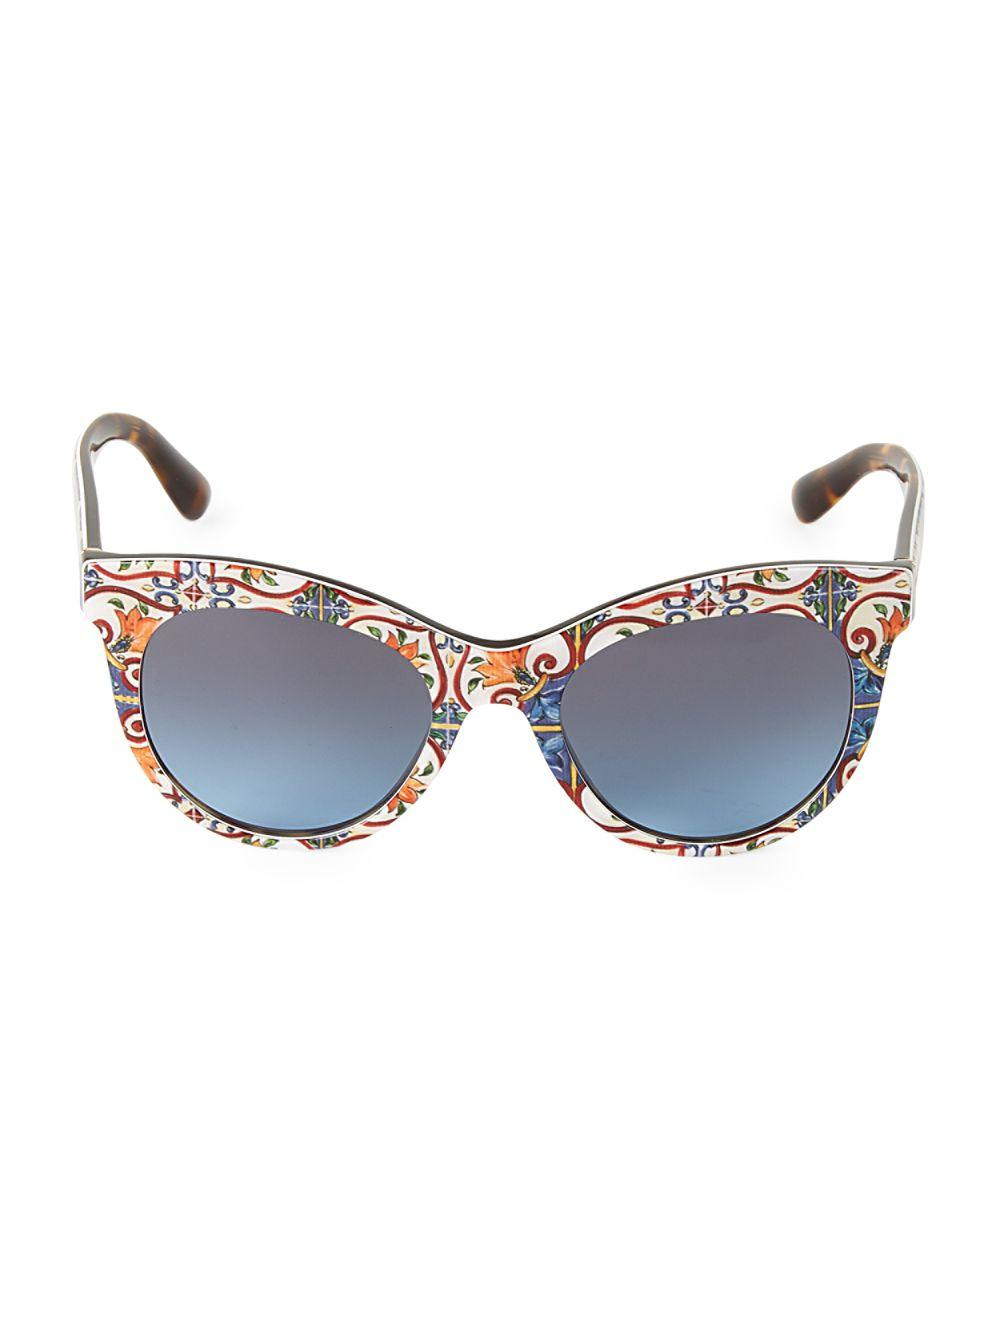 1cd62e030bea Lyst - Dolce   Gabbana 51mm Floral Tile Print Square Sunglasses in Blue